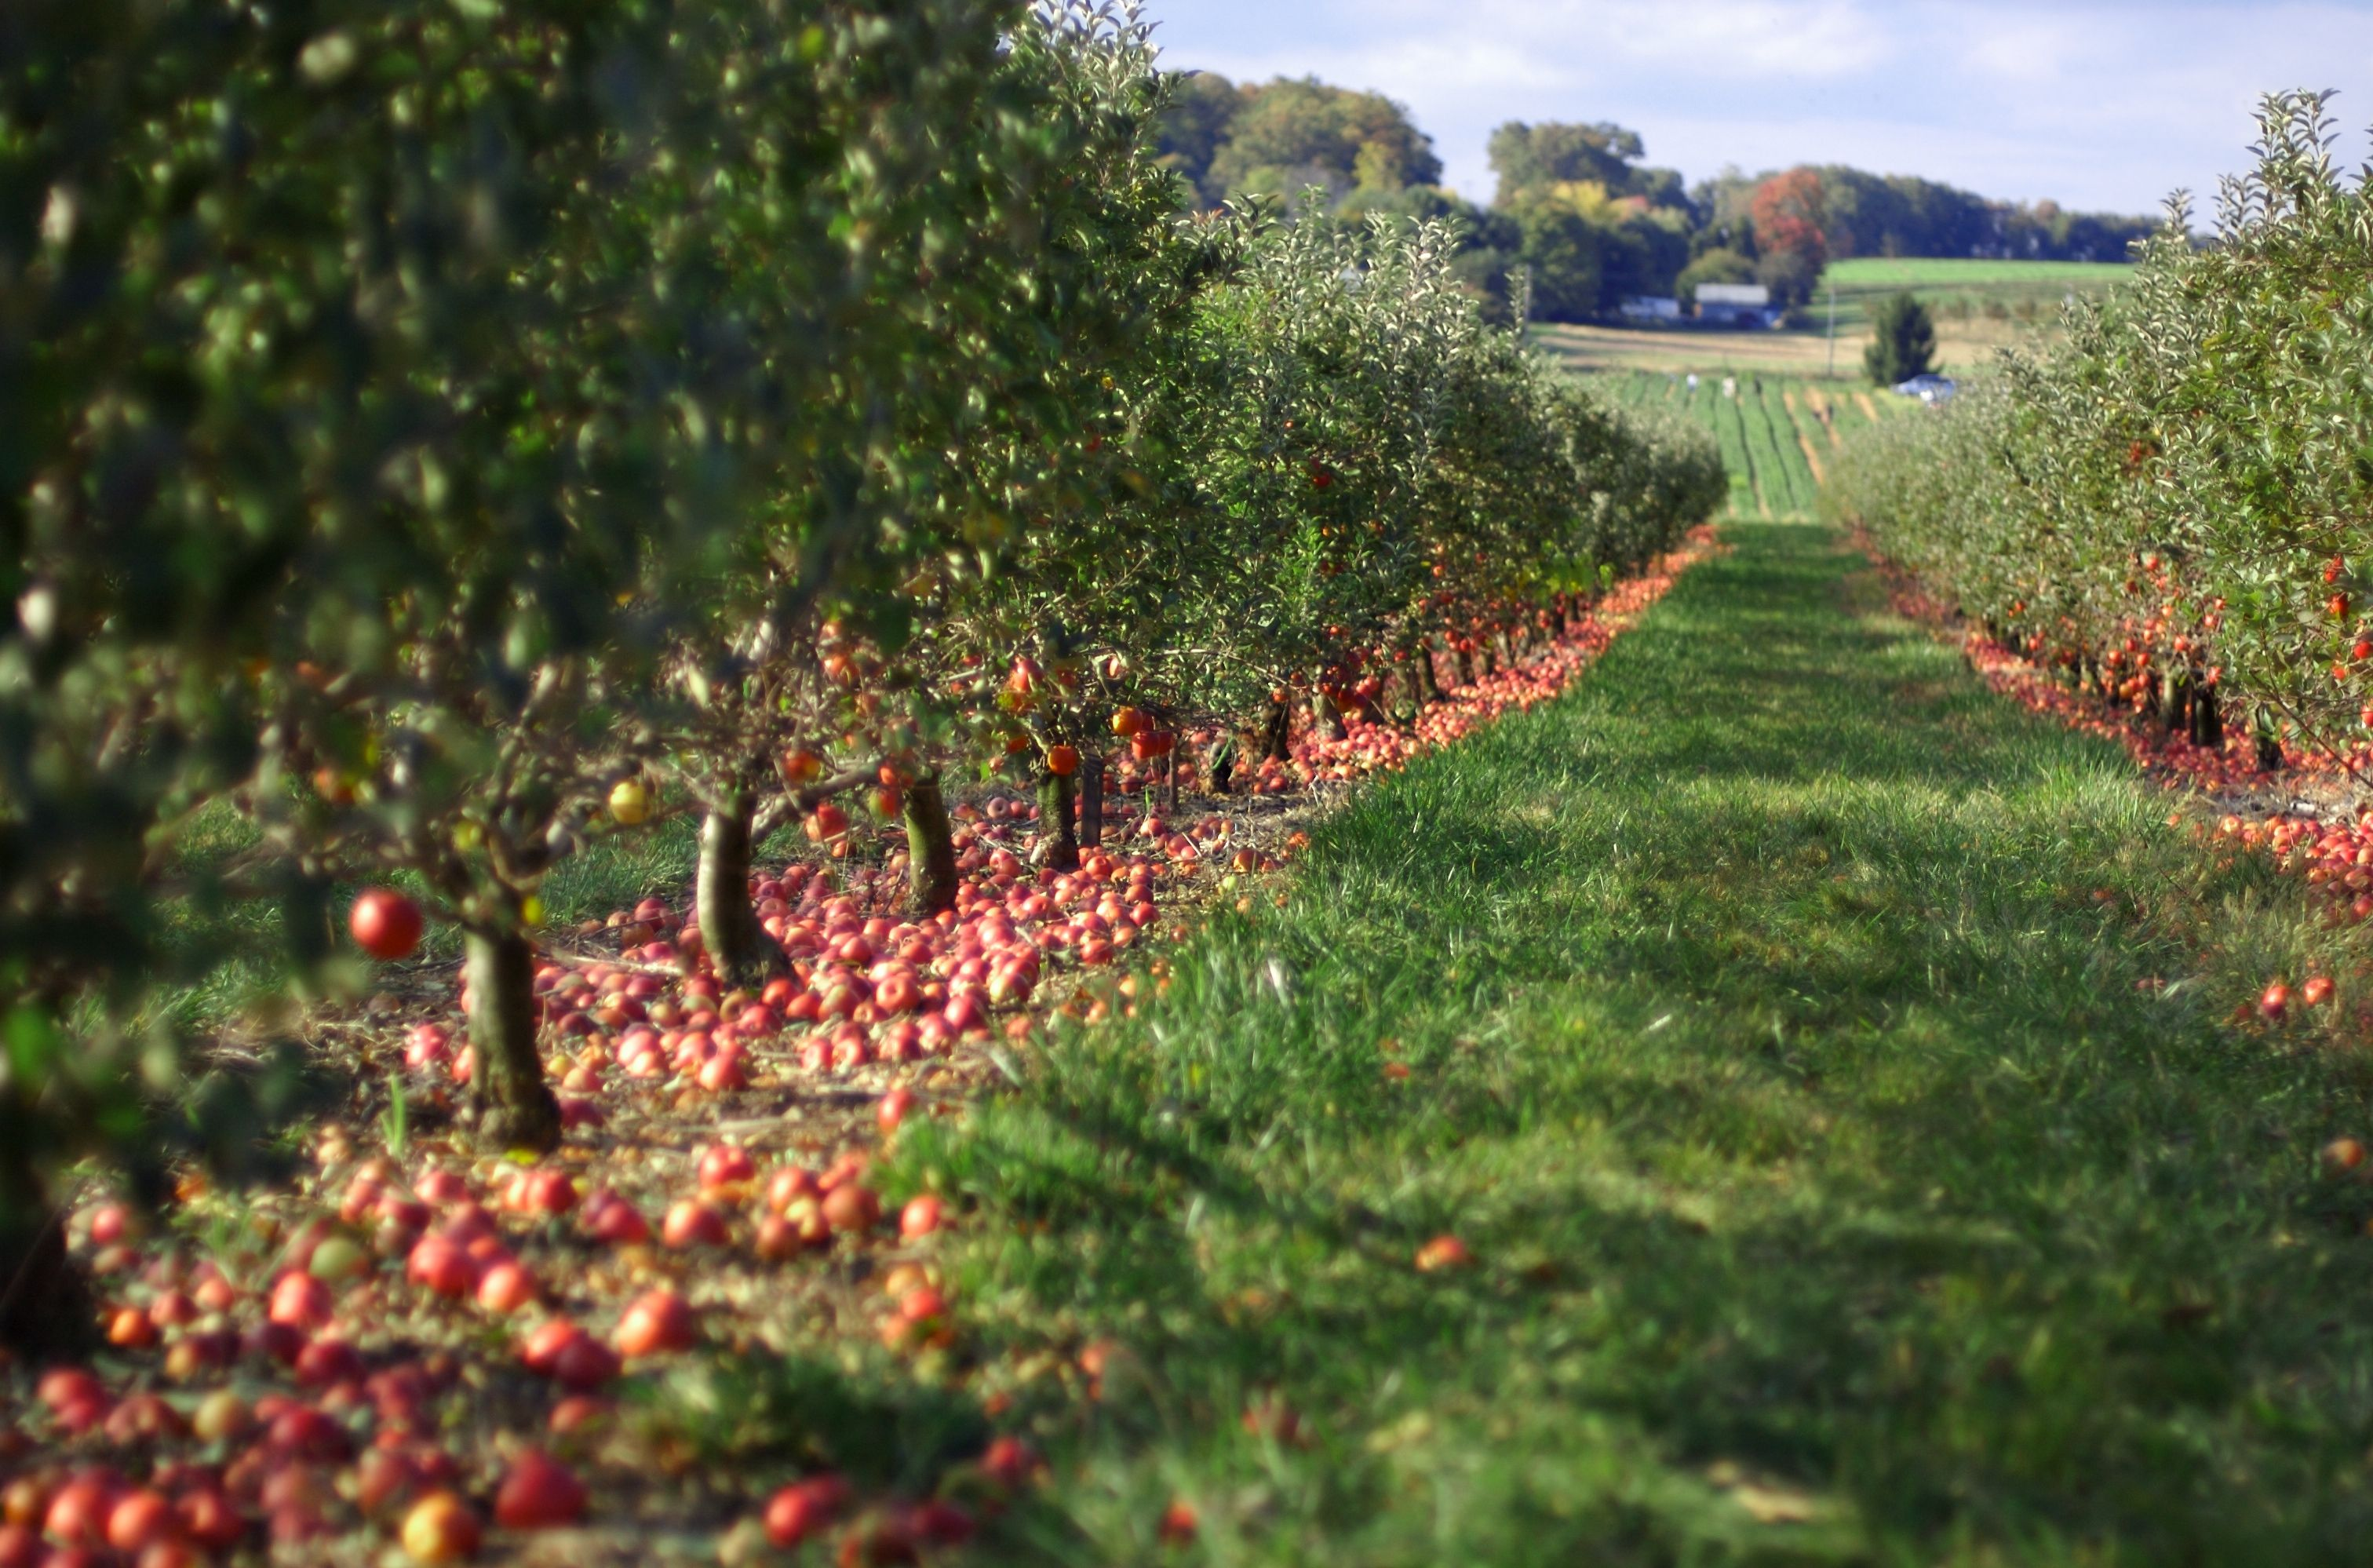 3024x1998 Map: Georgia's best picks for apple orchards, in time for fall